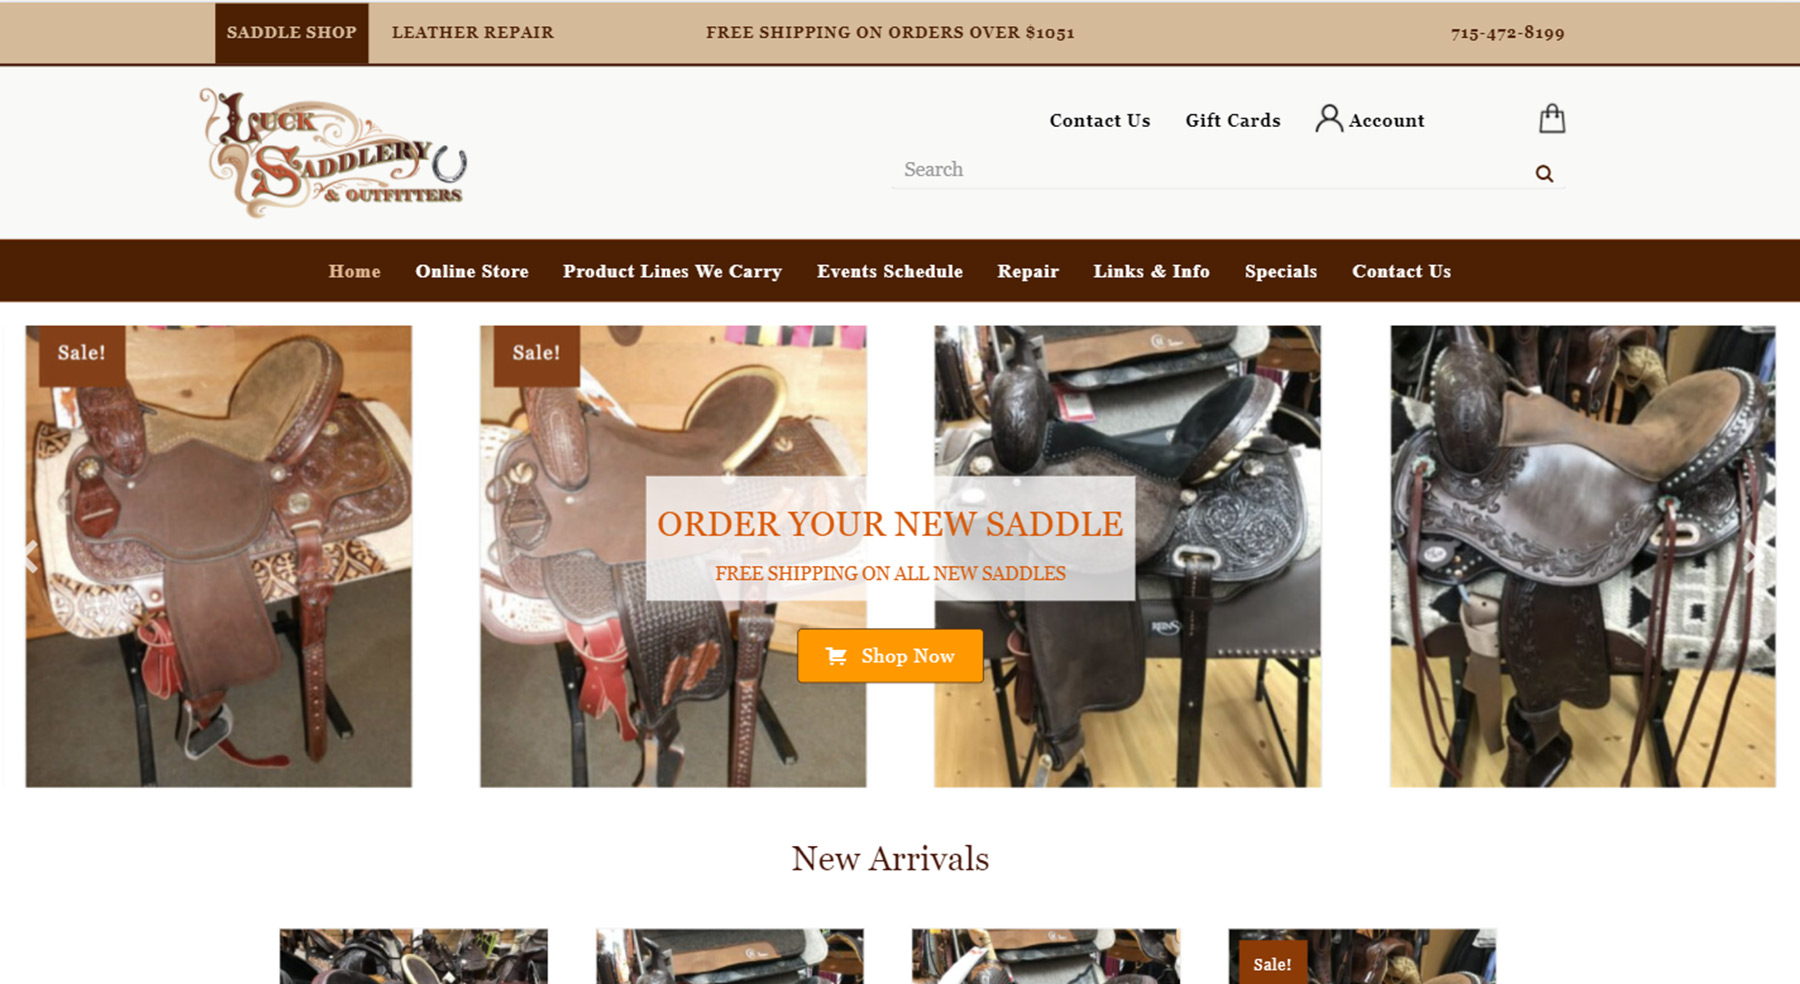 Website Design For Luck Saddlery & Outfitters in Luck